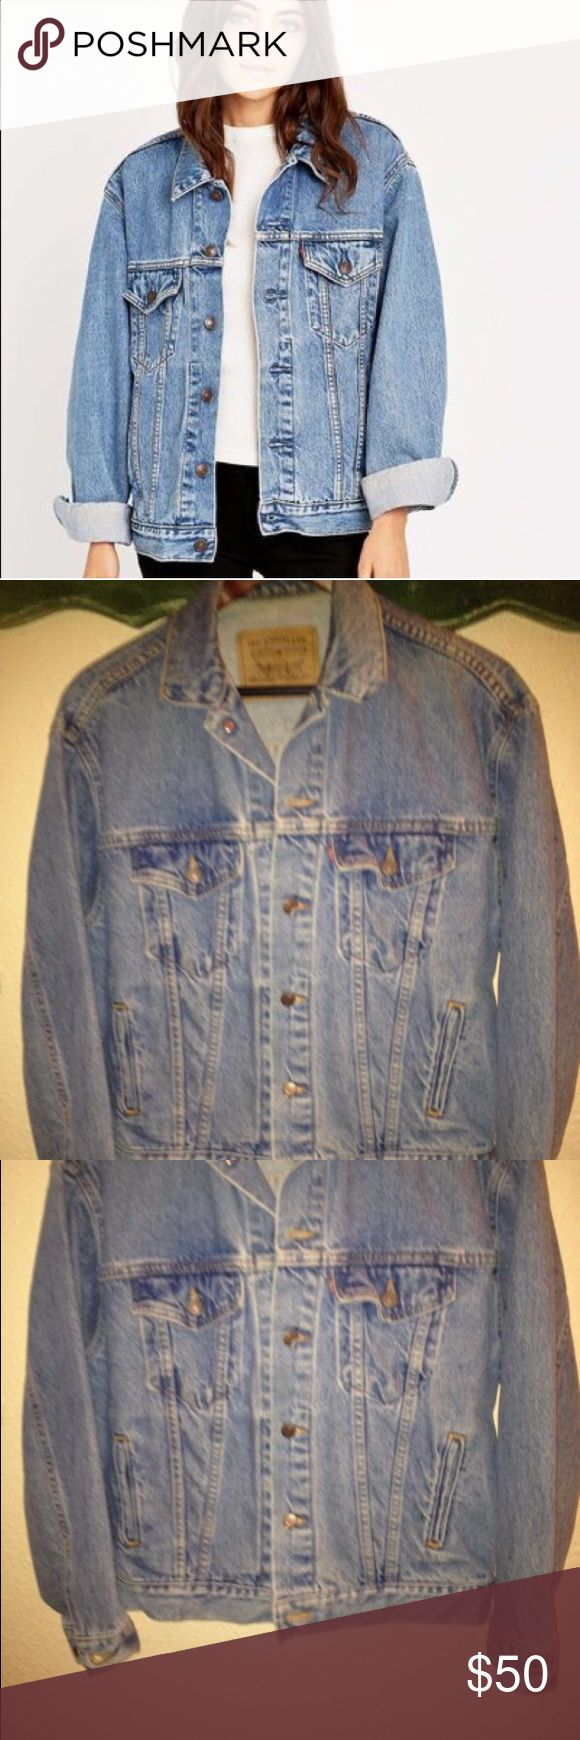 Levi's oversized boyfriend style jacket Worn only a couple times. Medium denim wash boyfriend fit jacket. Perfect staple piece to have in closet can be layered with tees or dresses. Fits a ladies S/M like the photo. Purchased from Urban Outfitters retail $98 still listed on their site. Price is firm. Urban Outfitters Other